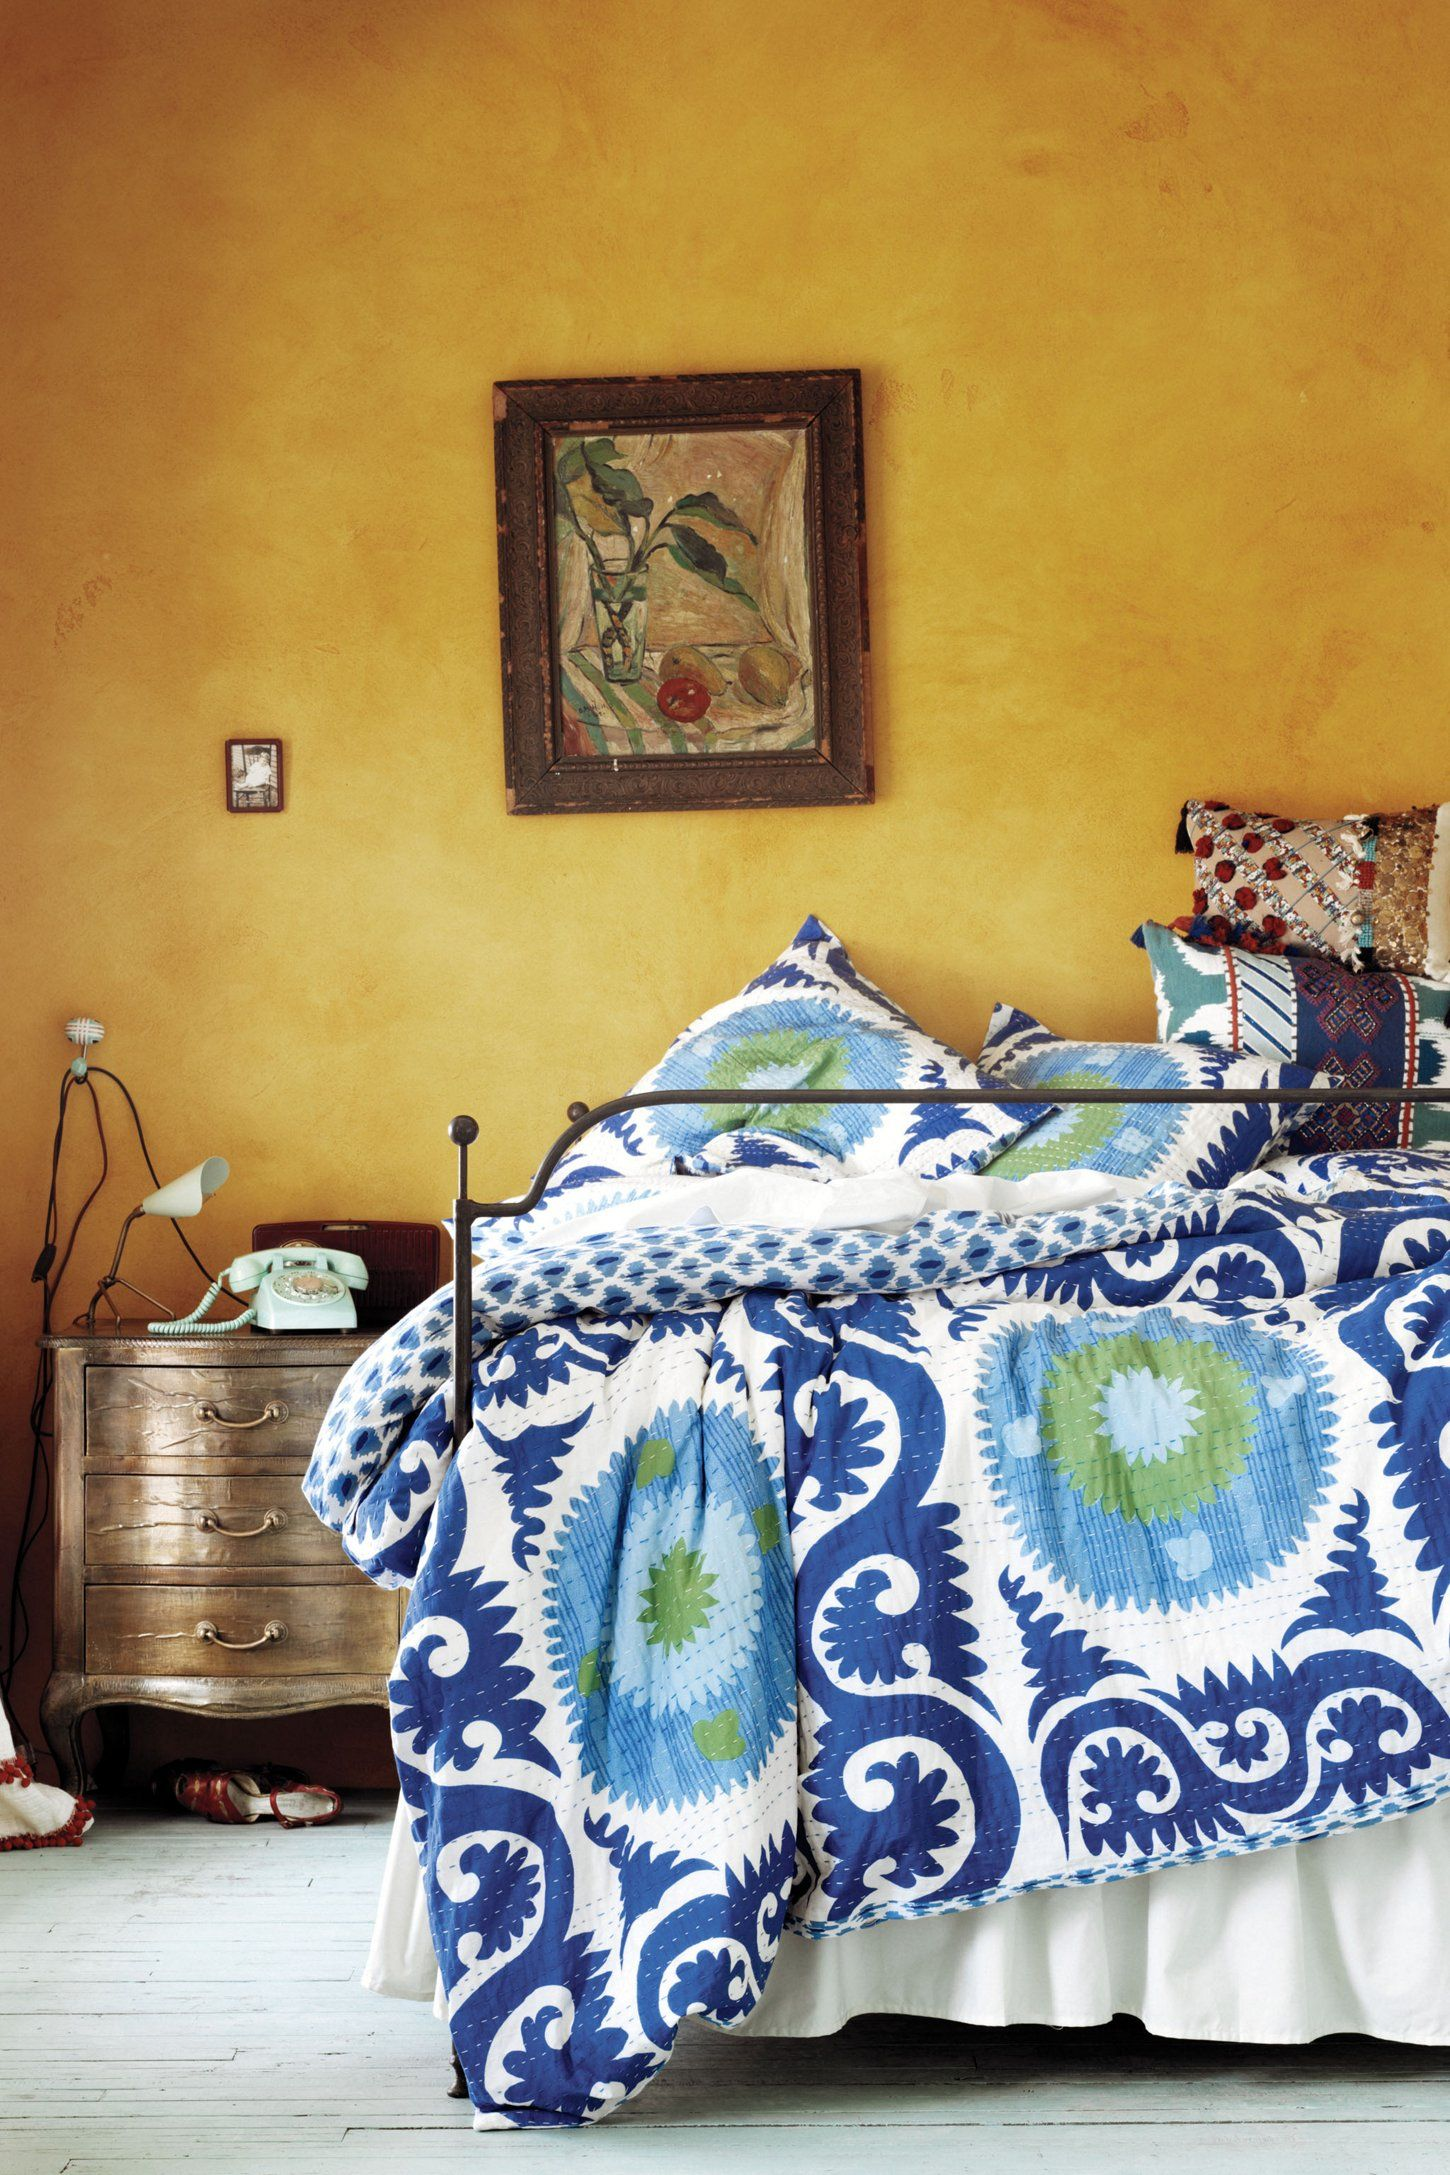 YalovaDuvet #Anthropologie | In the Bedroom | Pinterest ...